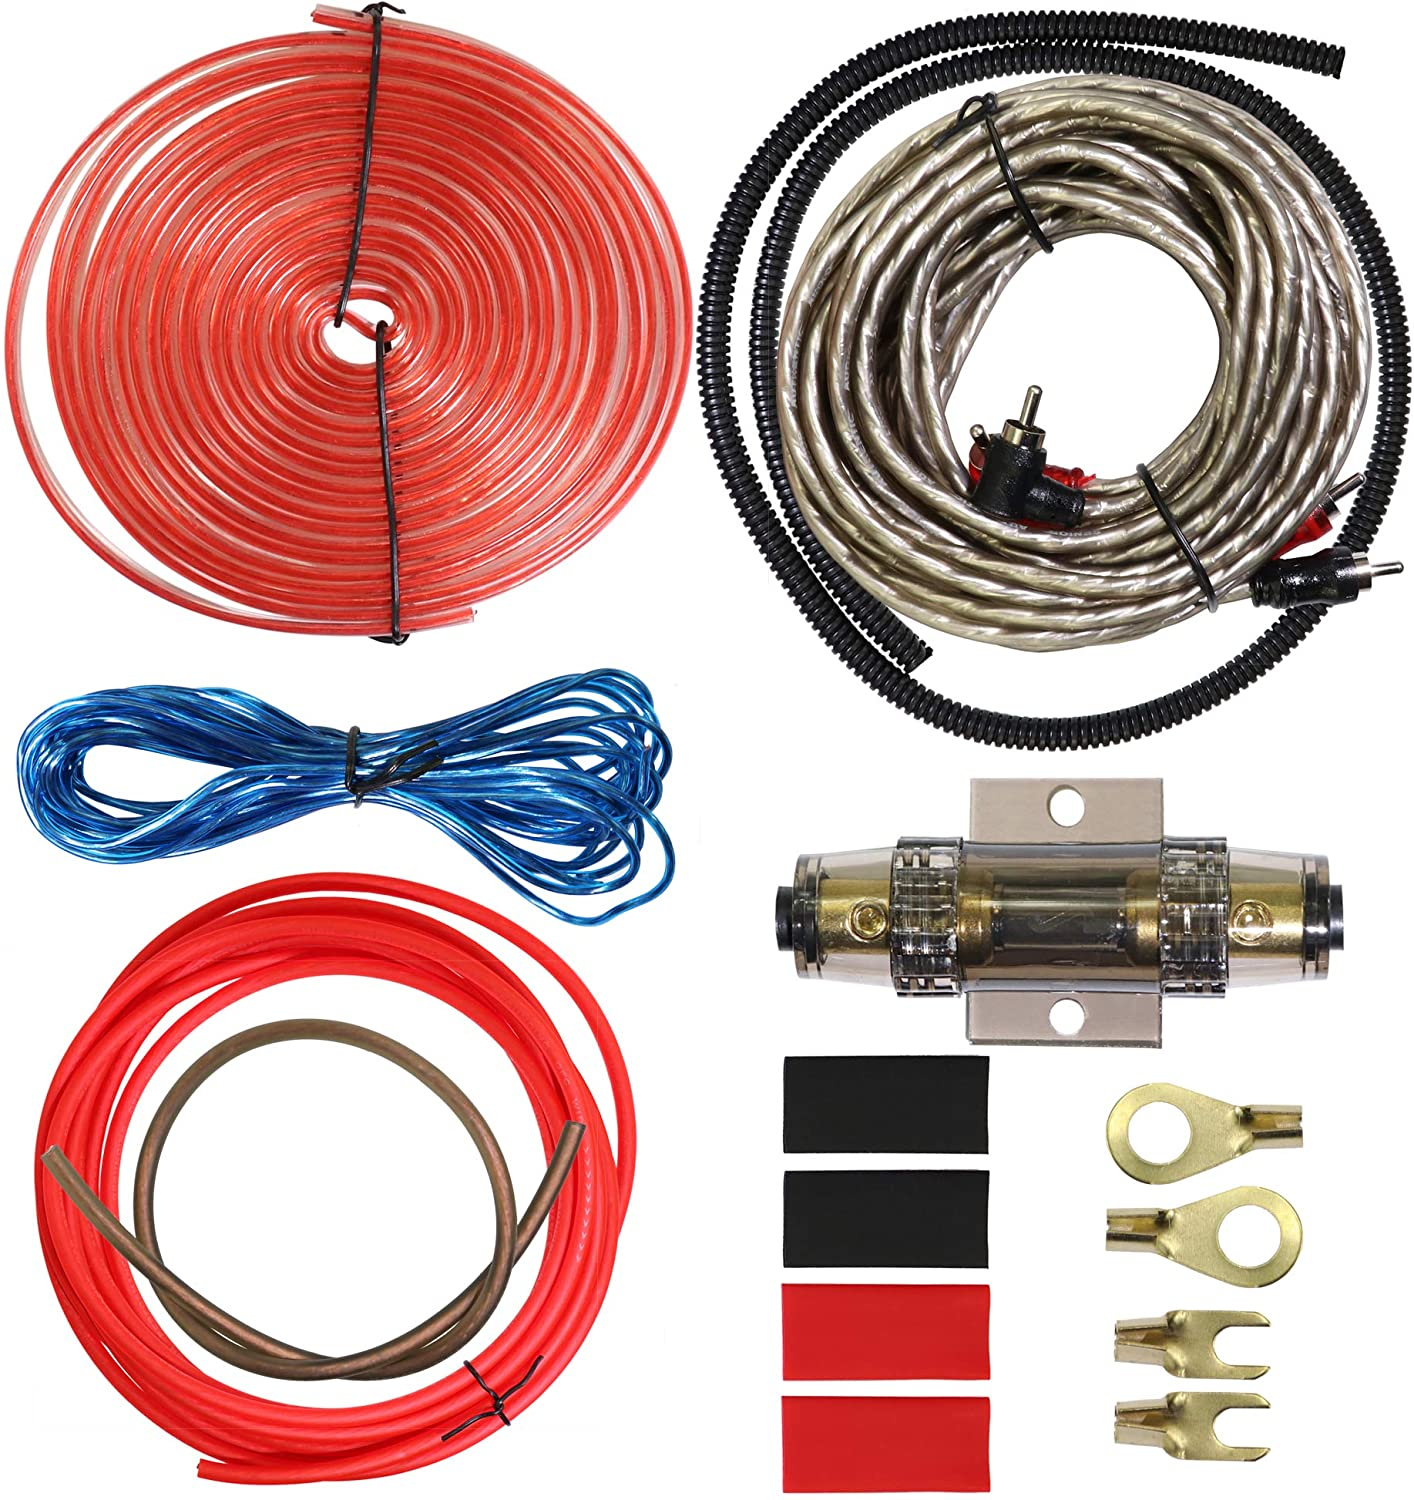 [DIAGRAM_5UK]  Amazon.com: 8 Gauge Car Amp Wiring Kit - Welugnal Amp Power Wire Amplifier  Installation Wiring Wire Kit, Power, Ground, Remote Cable, RCA  Cable,Speaker Wire, Split Loom Tubing Fuse Holder Subwoofers Wiring kit: | Car Audio Amp Wiring Kits |  | Amazon.com